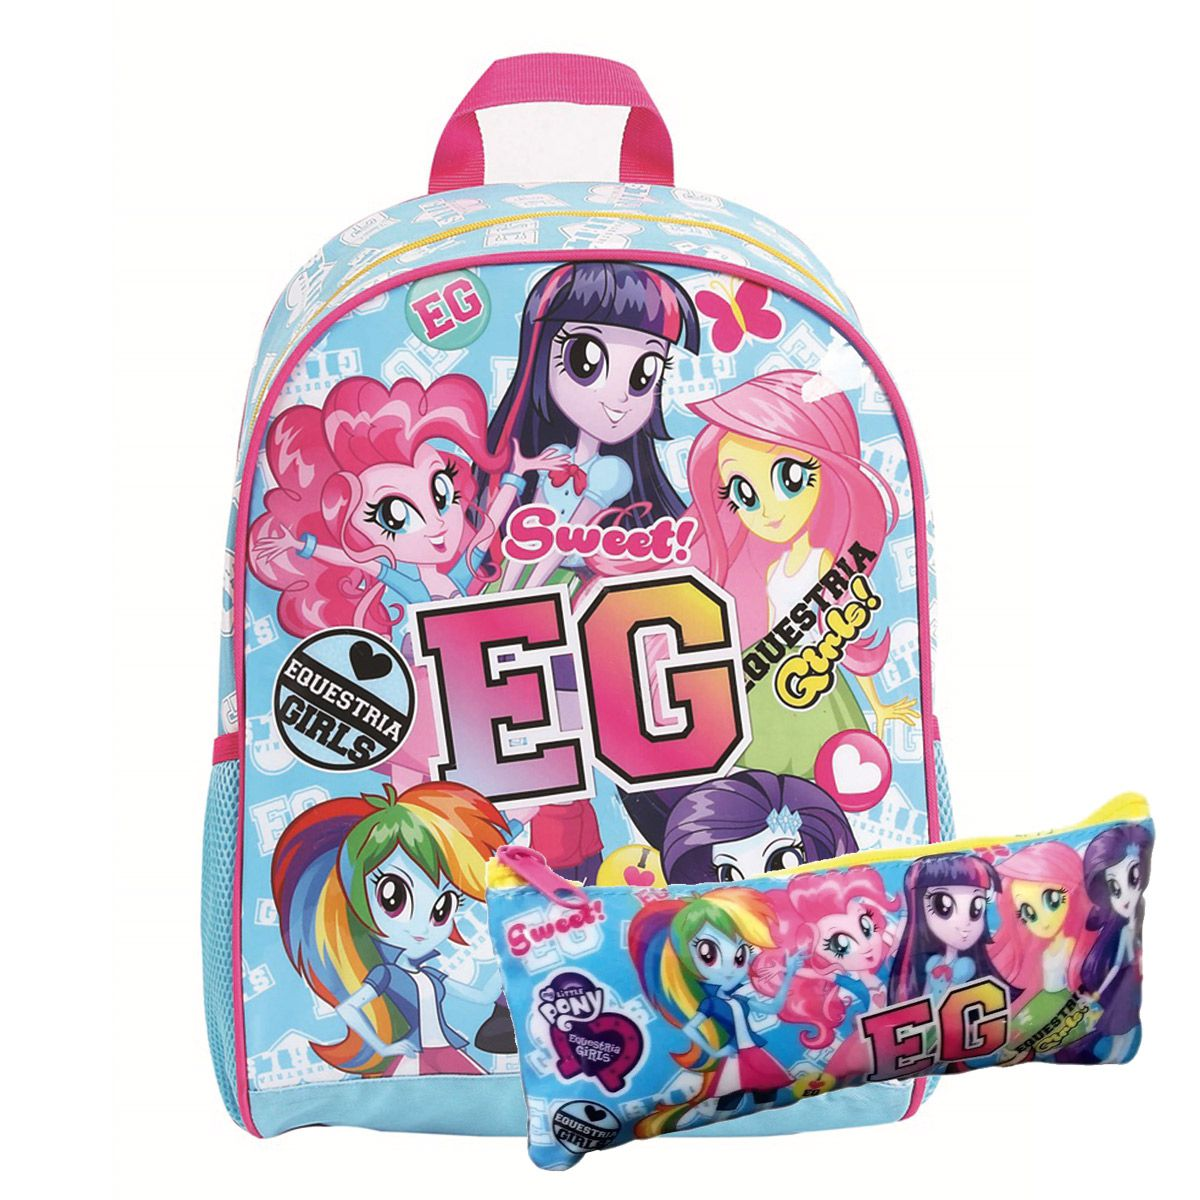 Kit Mochila G My Little Pony Equestria Girls C/ estojo Oficial